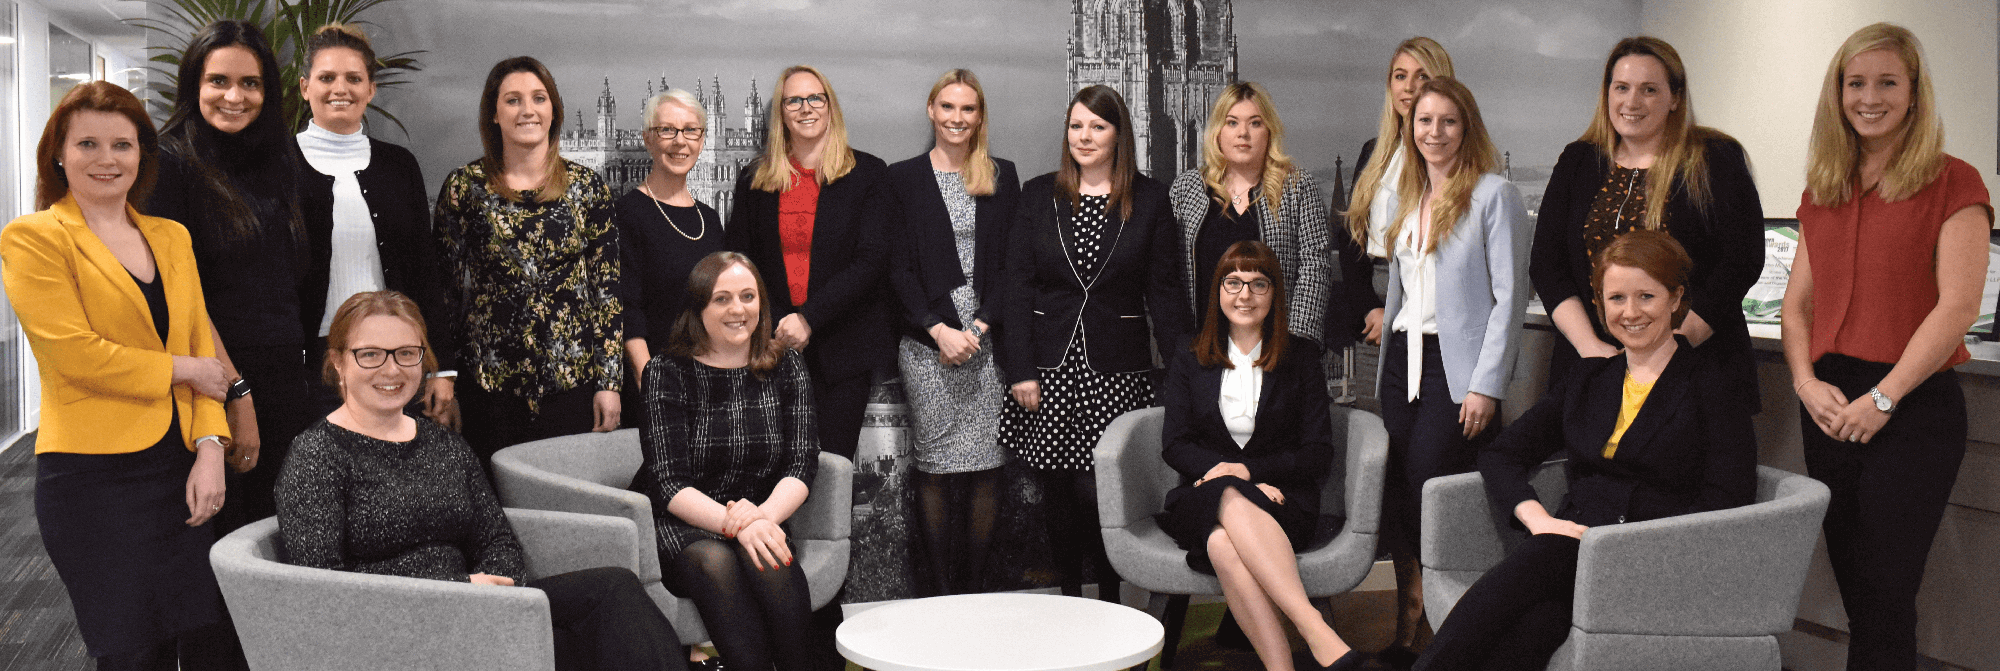 International Womens Day - Females Solicitors